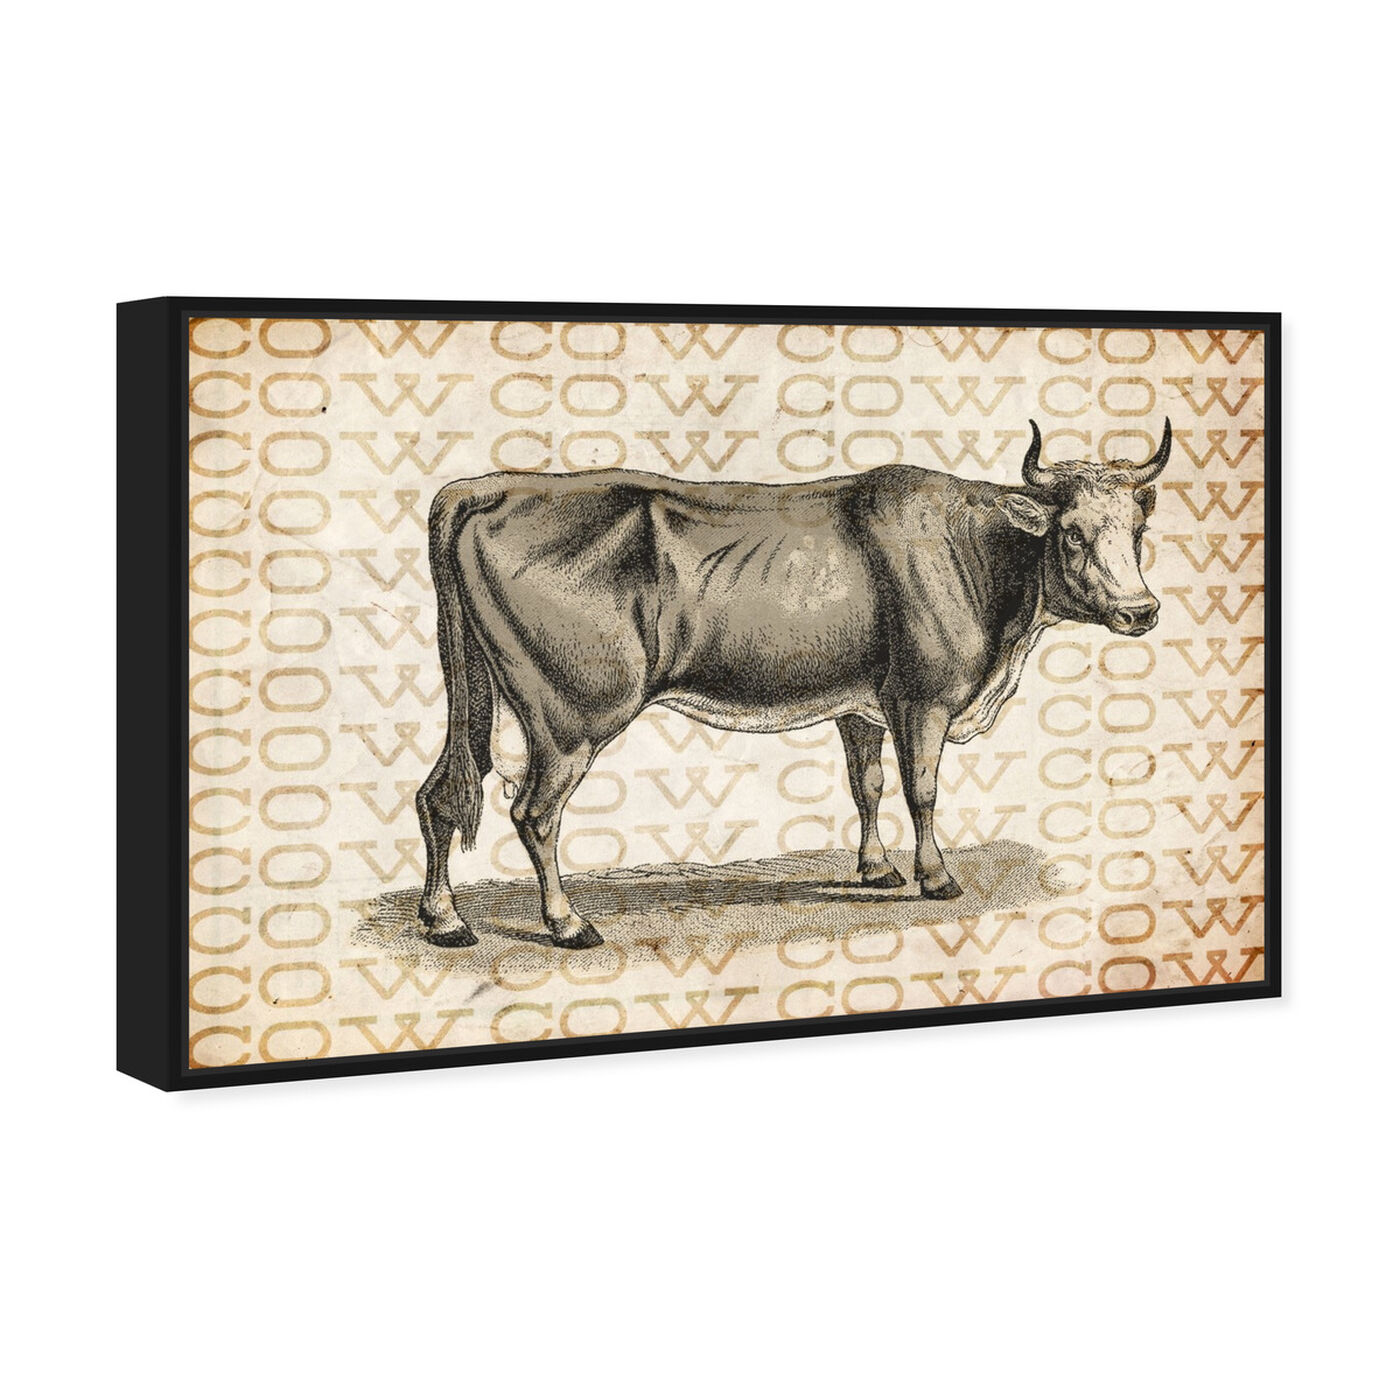 Angled view of Cow featuring animals and farm animals art.